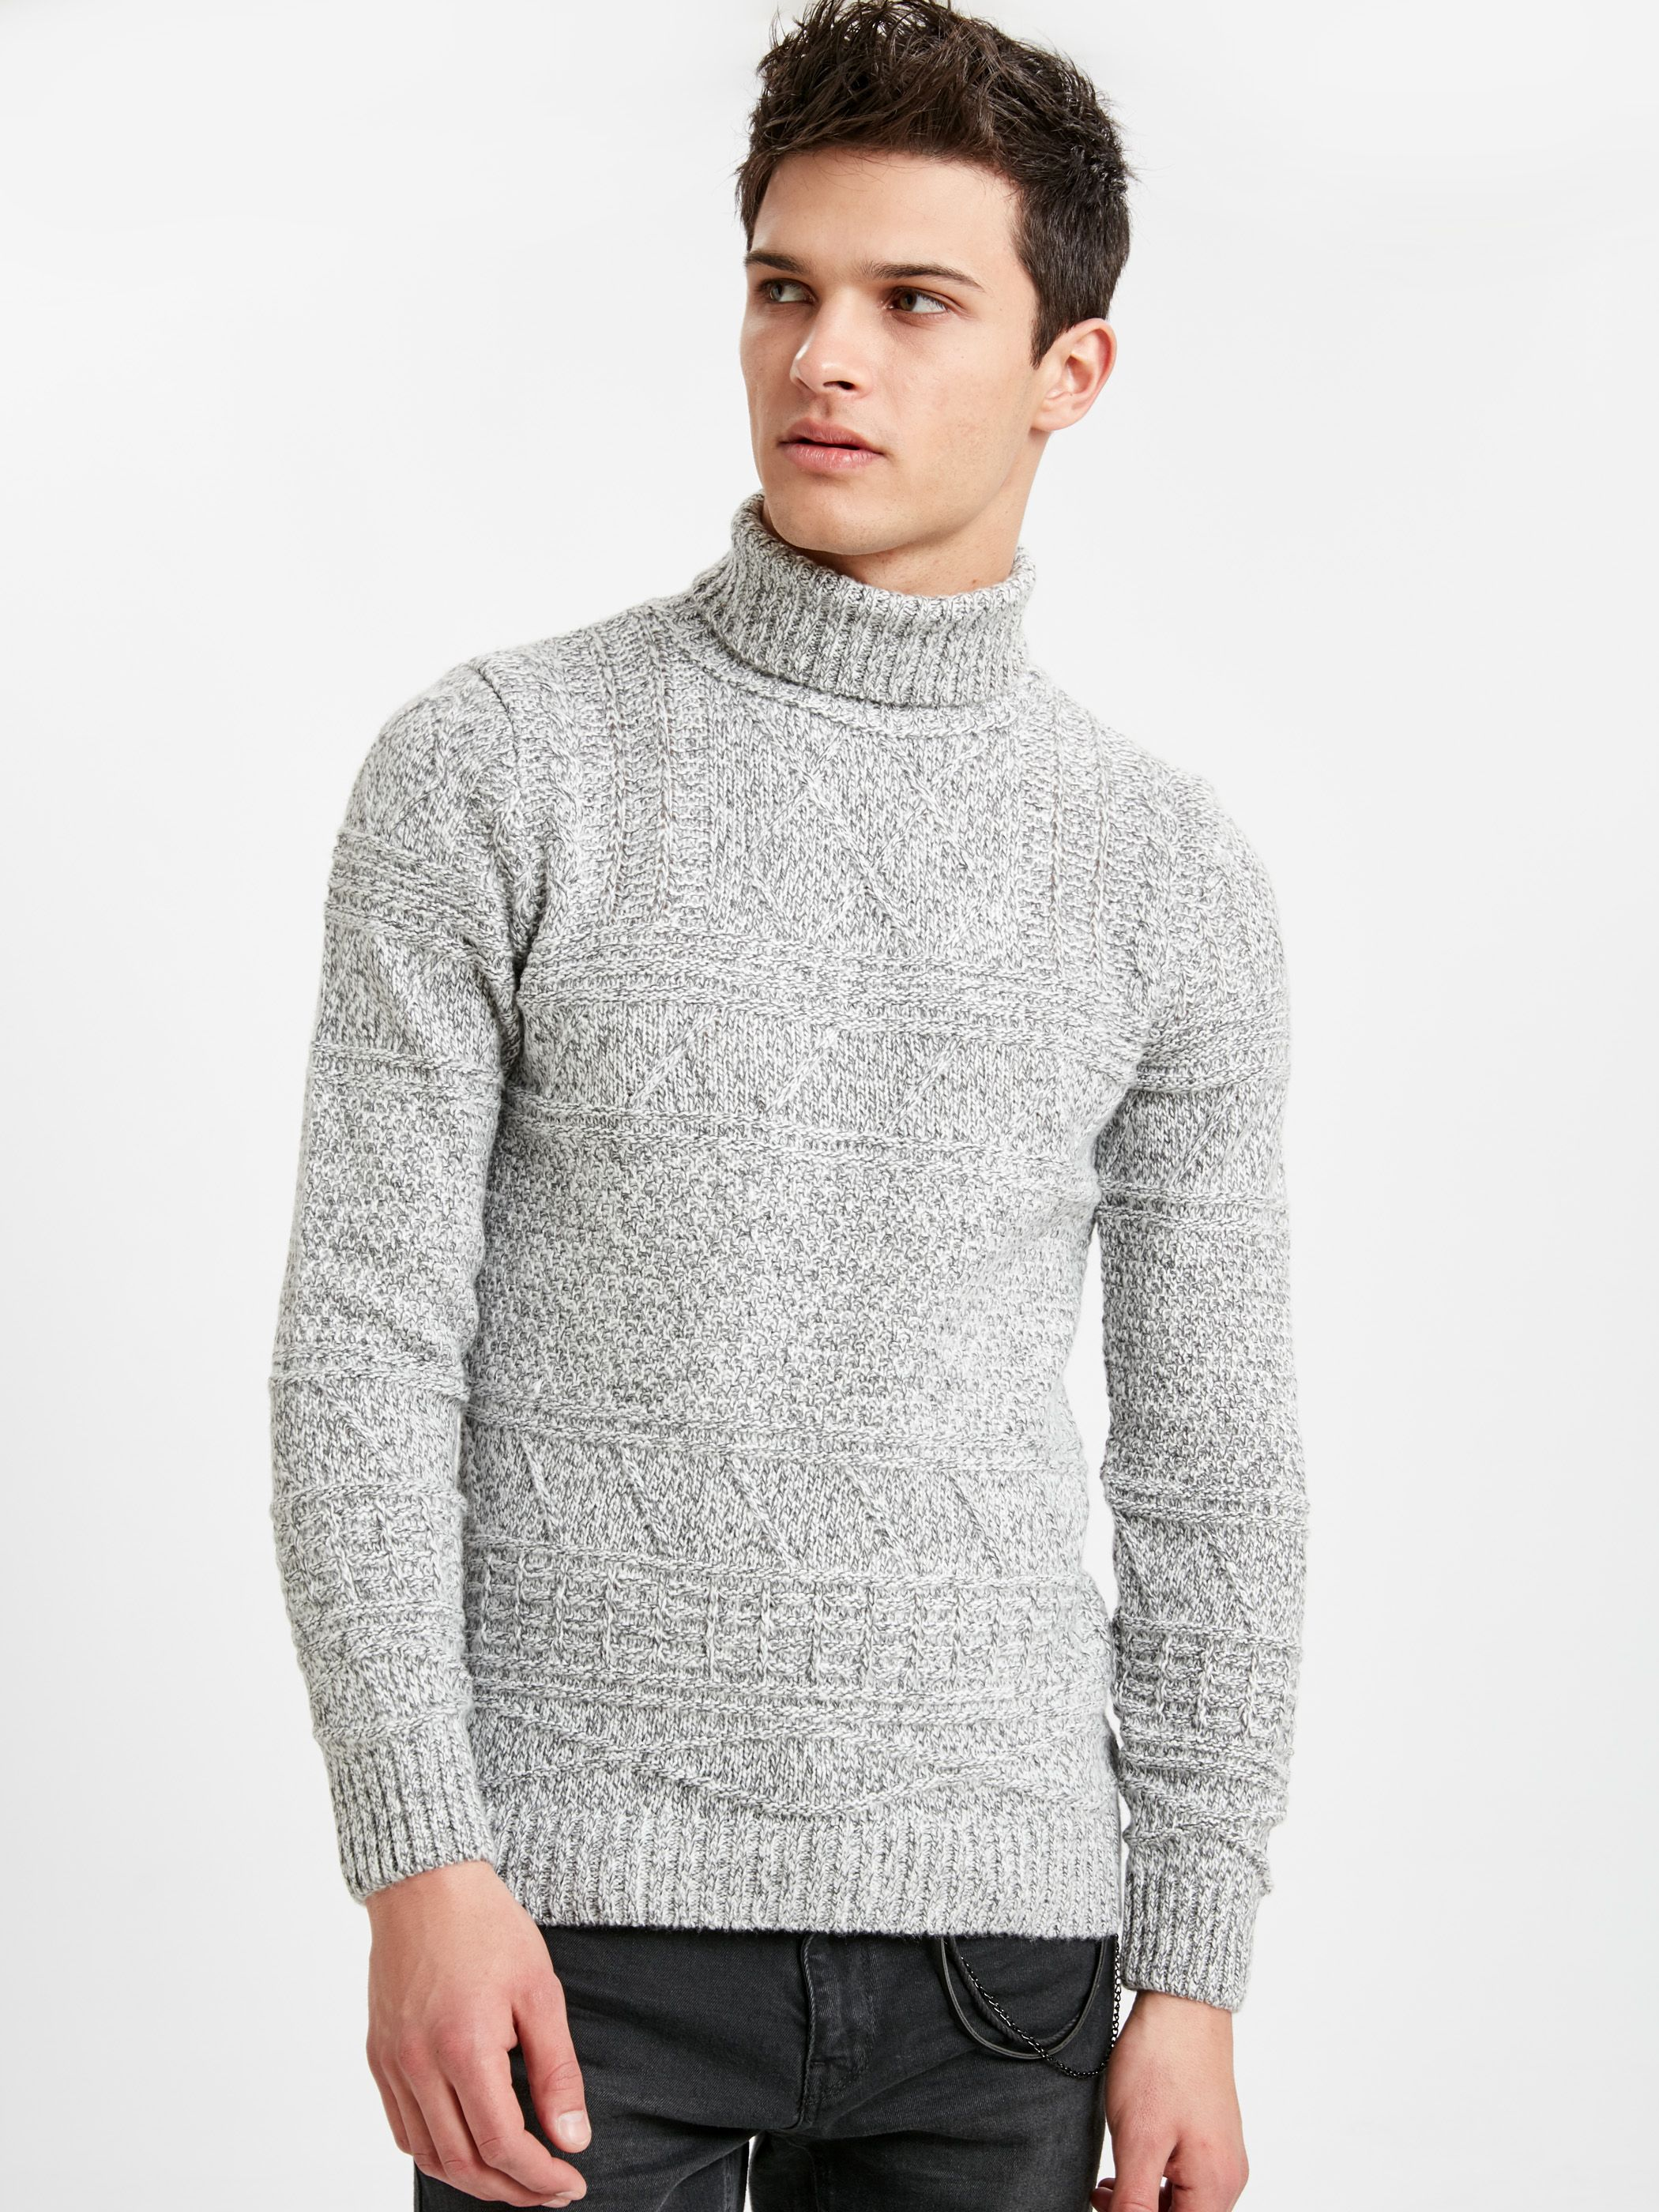 YUNY Mens Fashion Classic Rib Solid Mock Neck Pullovers Sweater Brown M